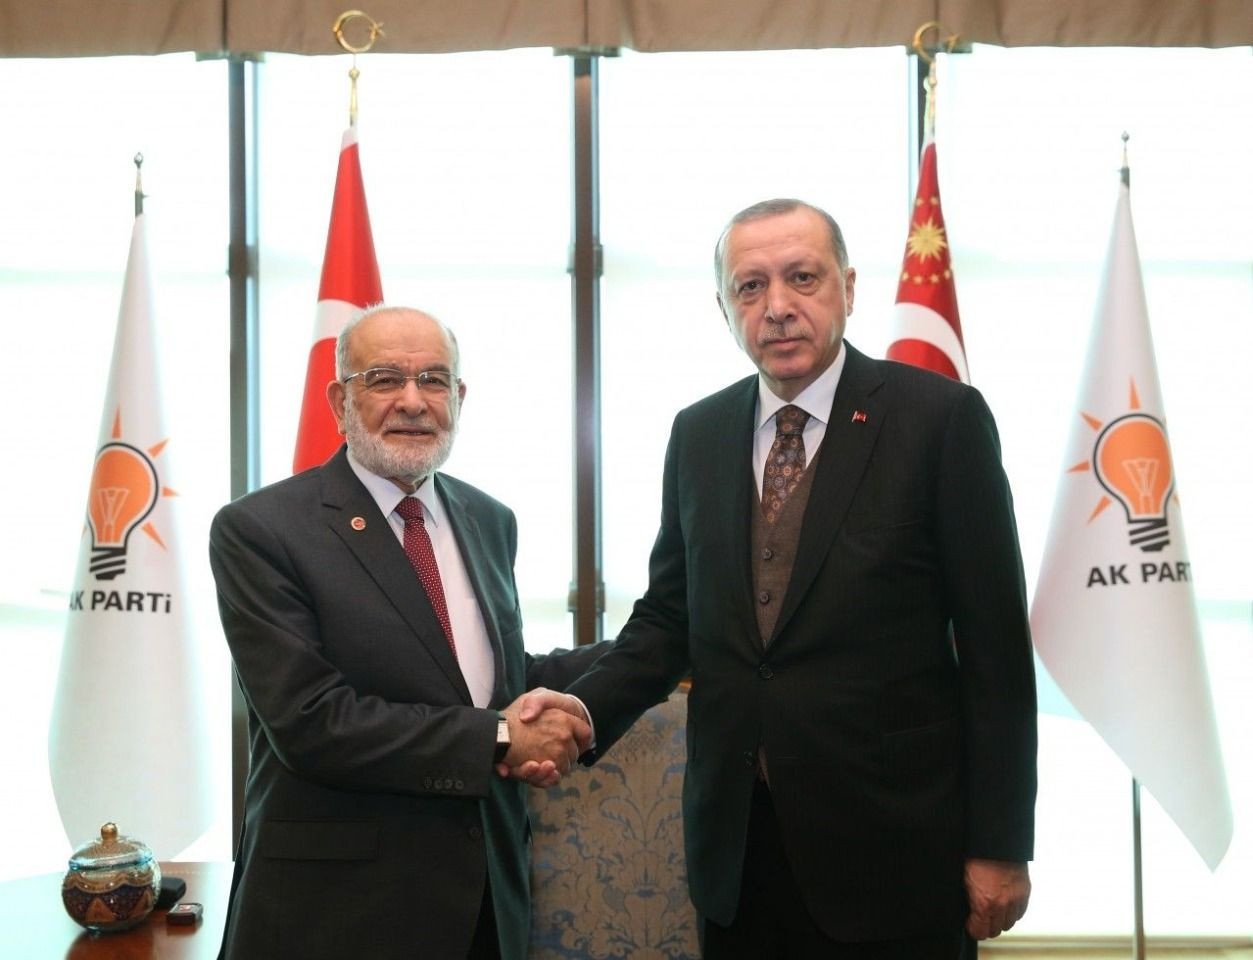 Temel Karamollaoğlu invited to Erdogan's oath ceremony